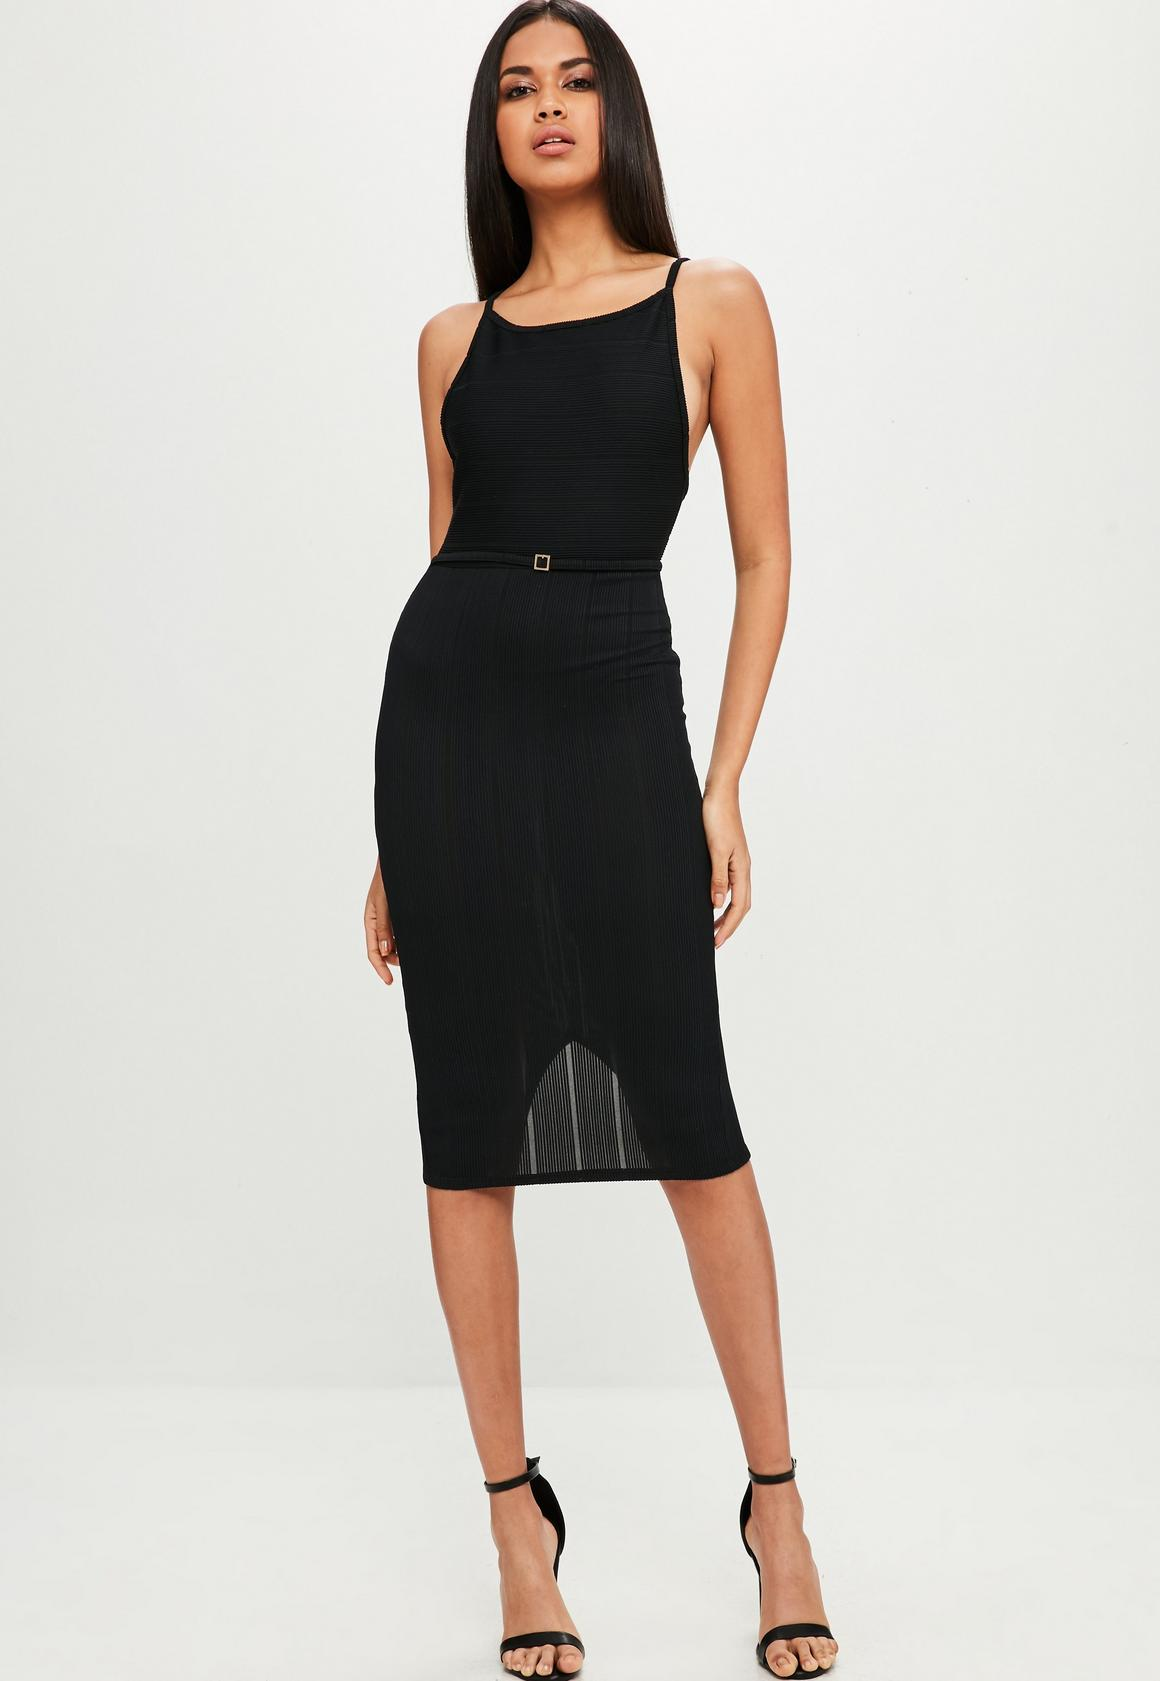 Black backless cocktail dress